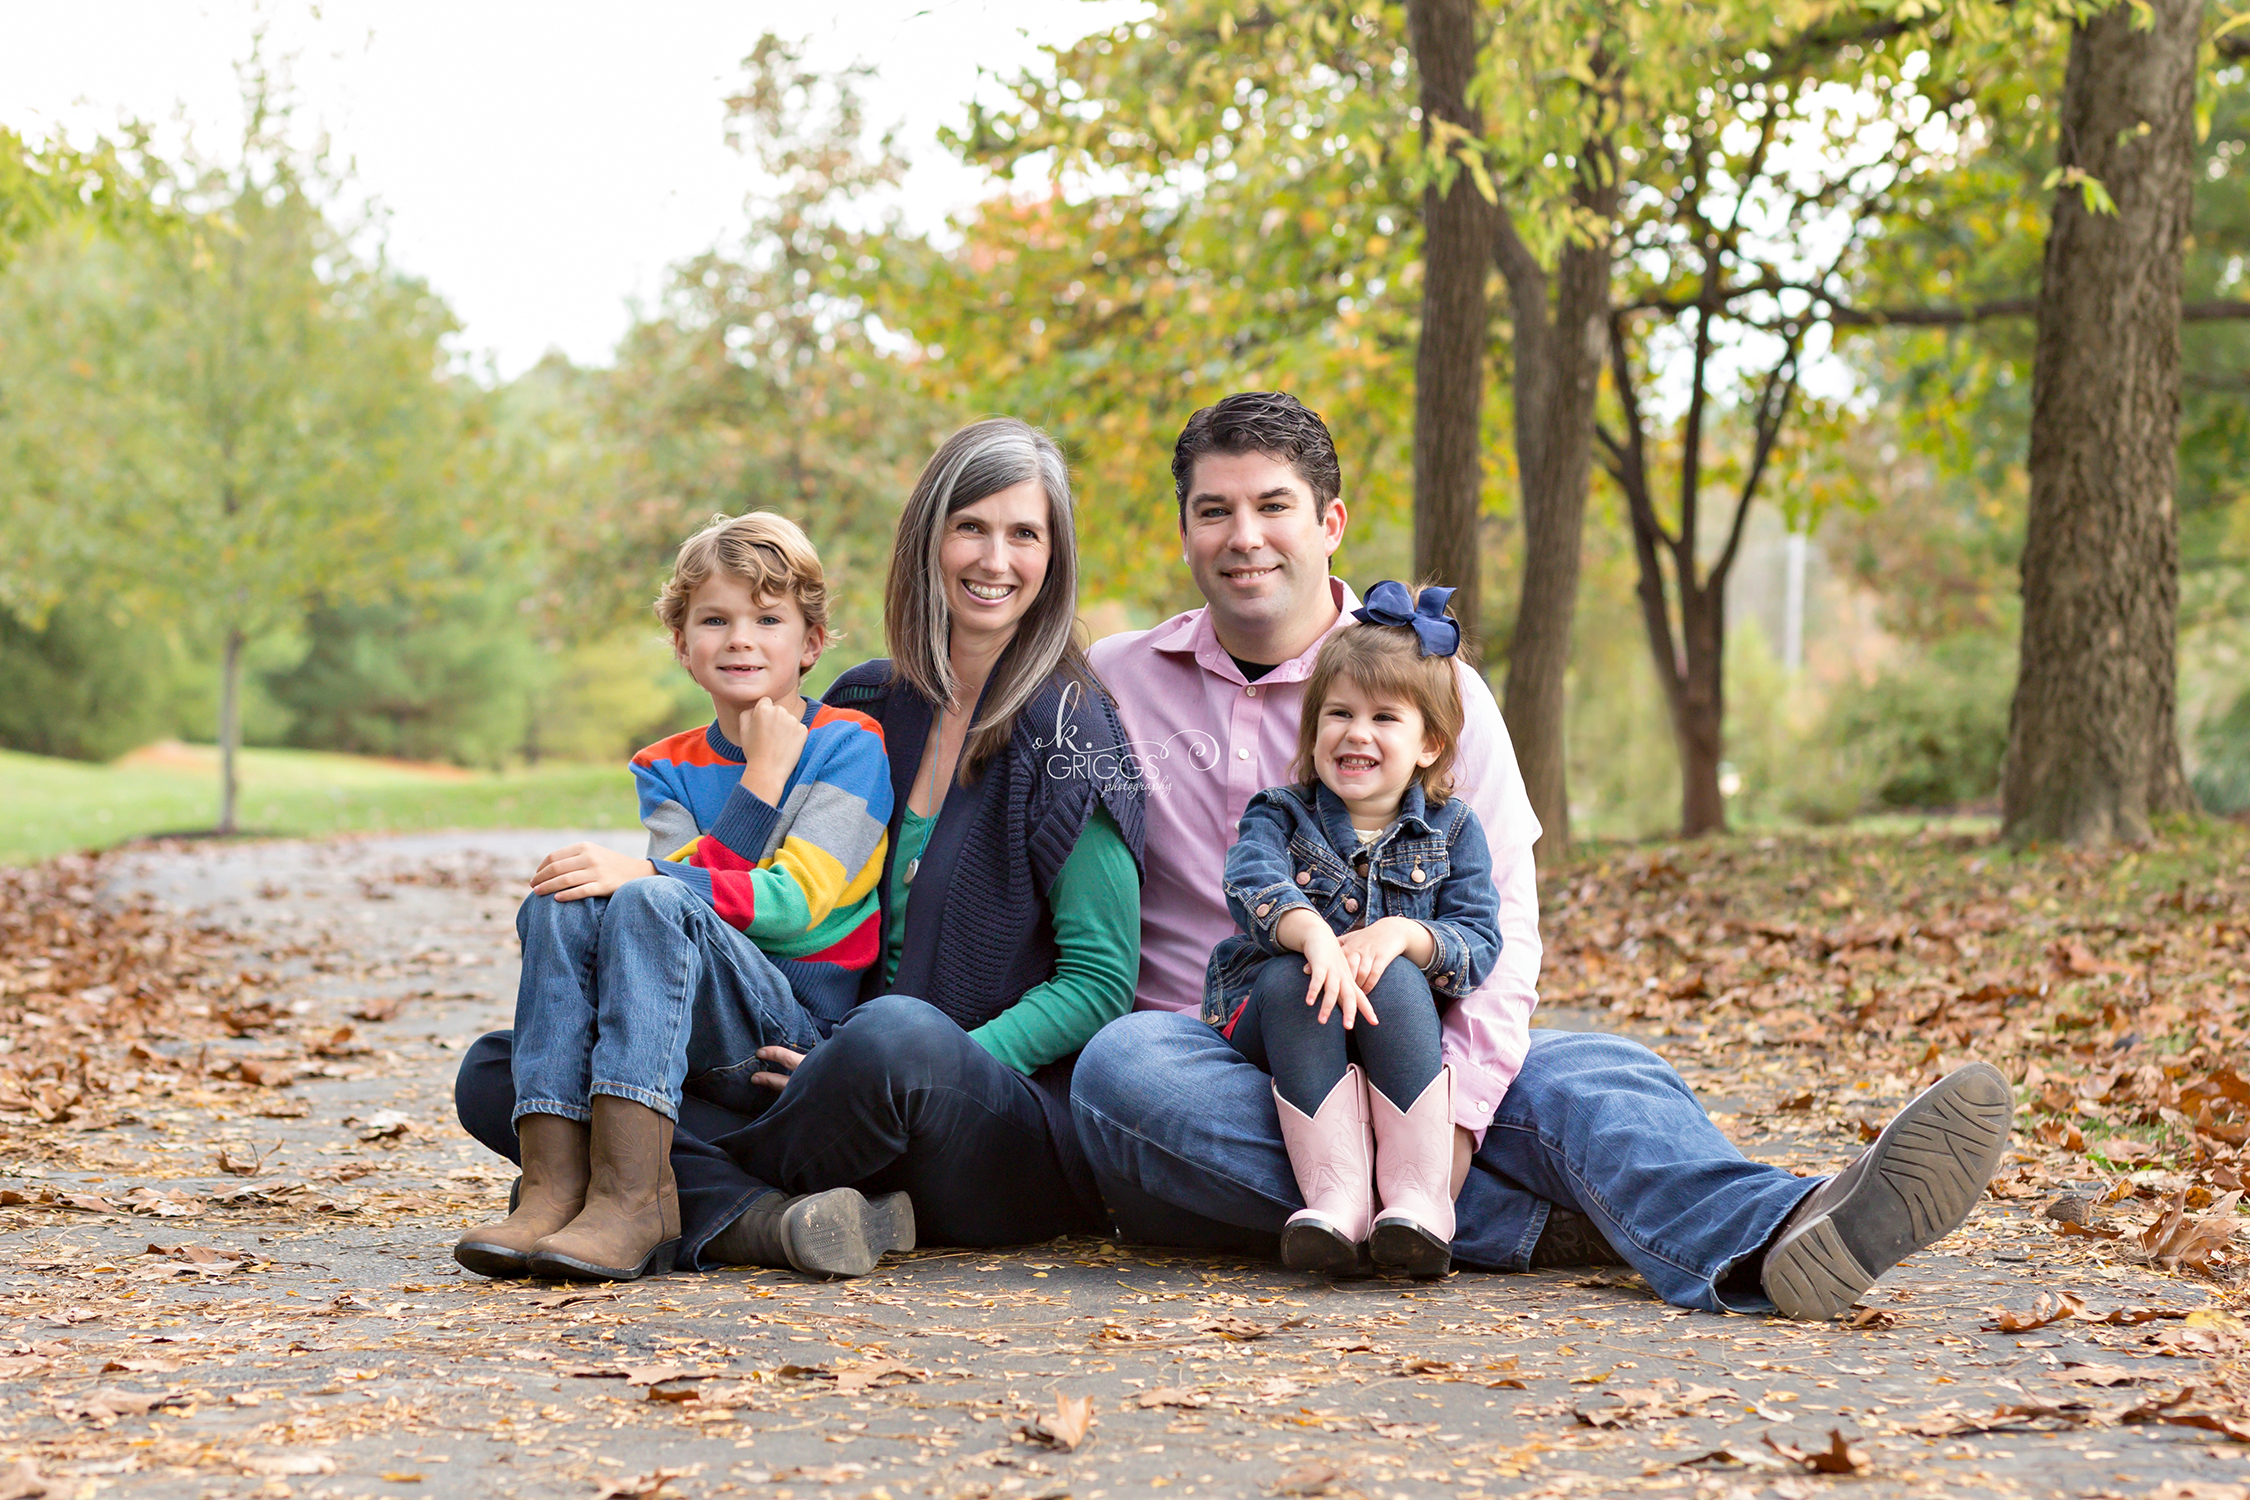 Family of 4 sitting on path in park | St. Louis Photographer